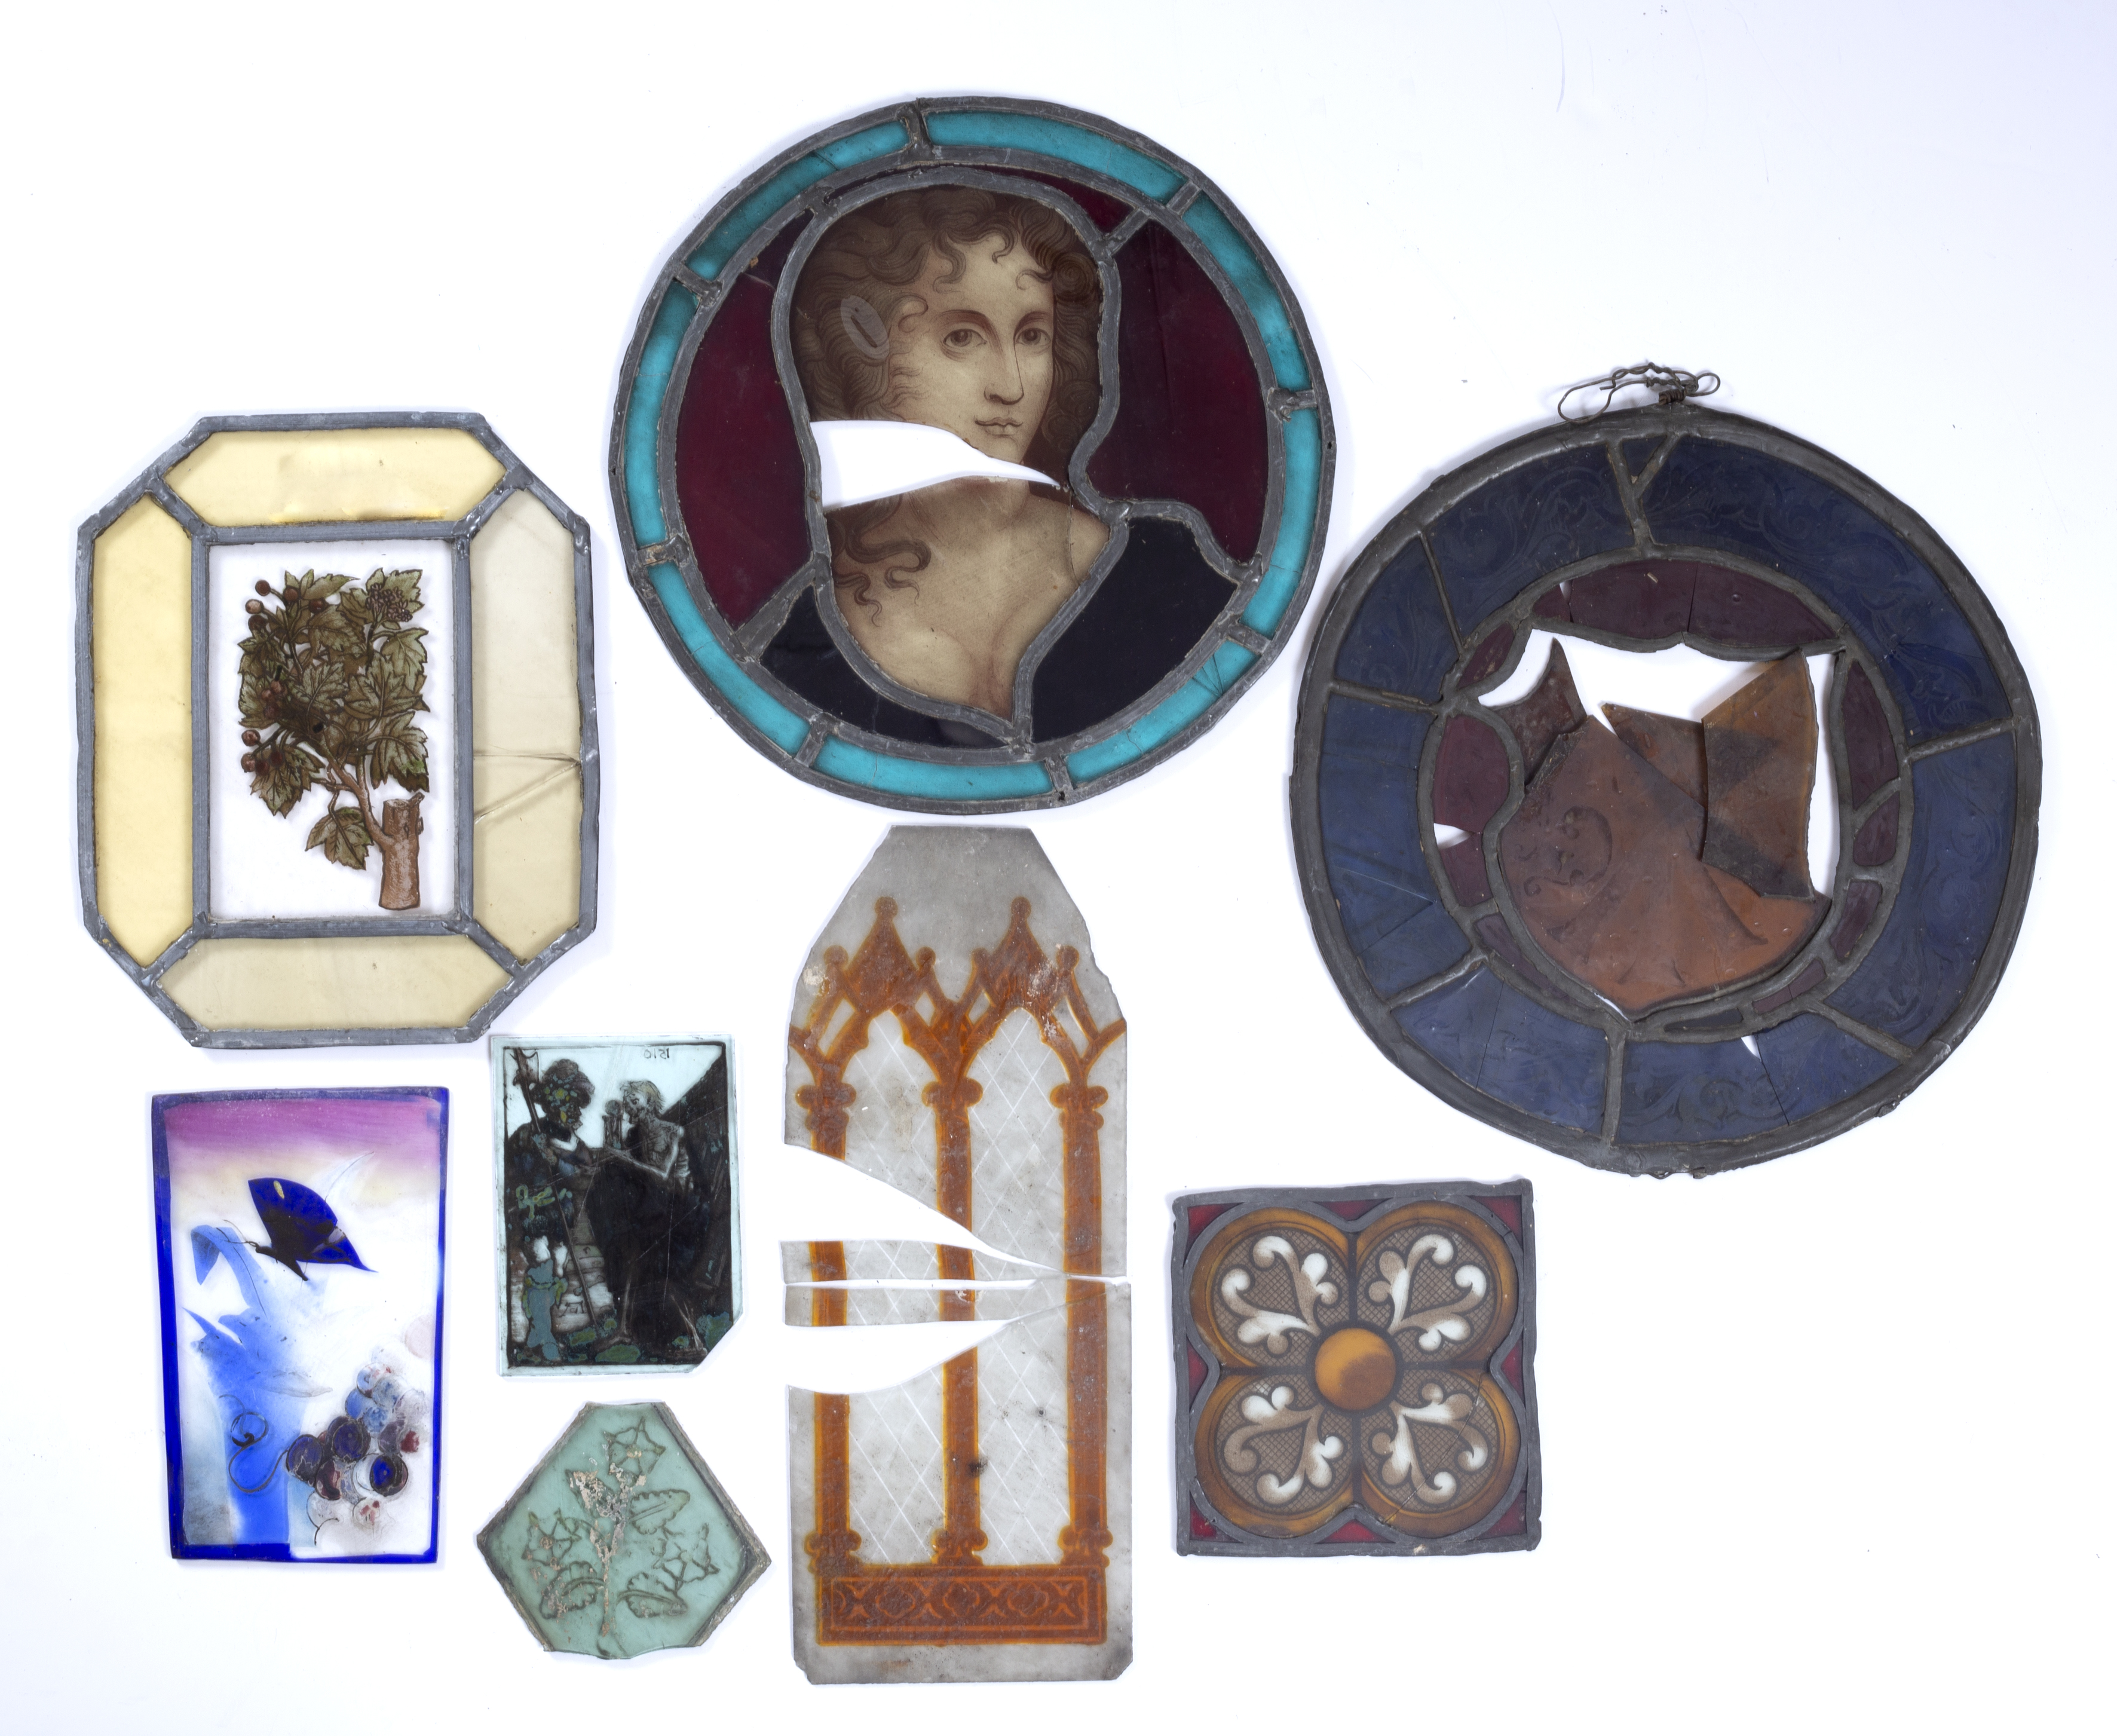 Fragments of six old stained and leaded glass windows, largest 26cm diameter